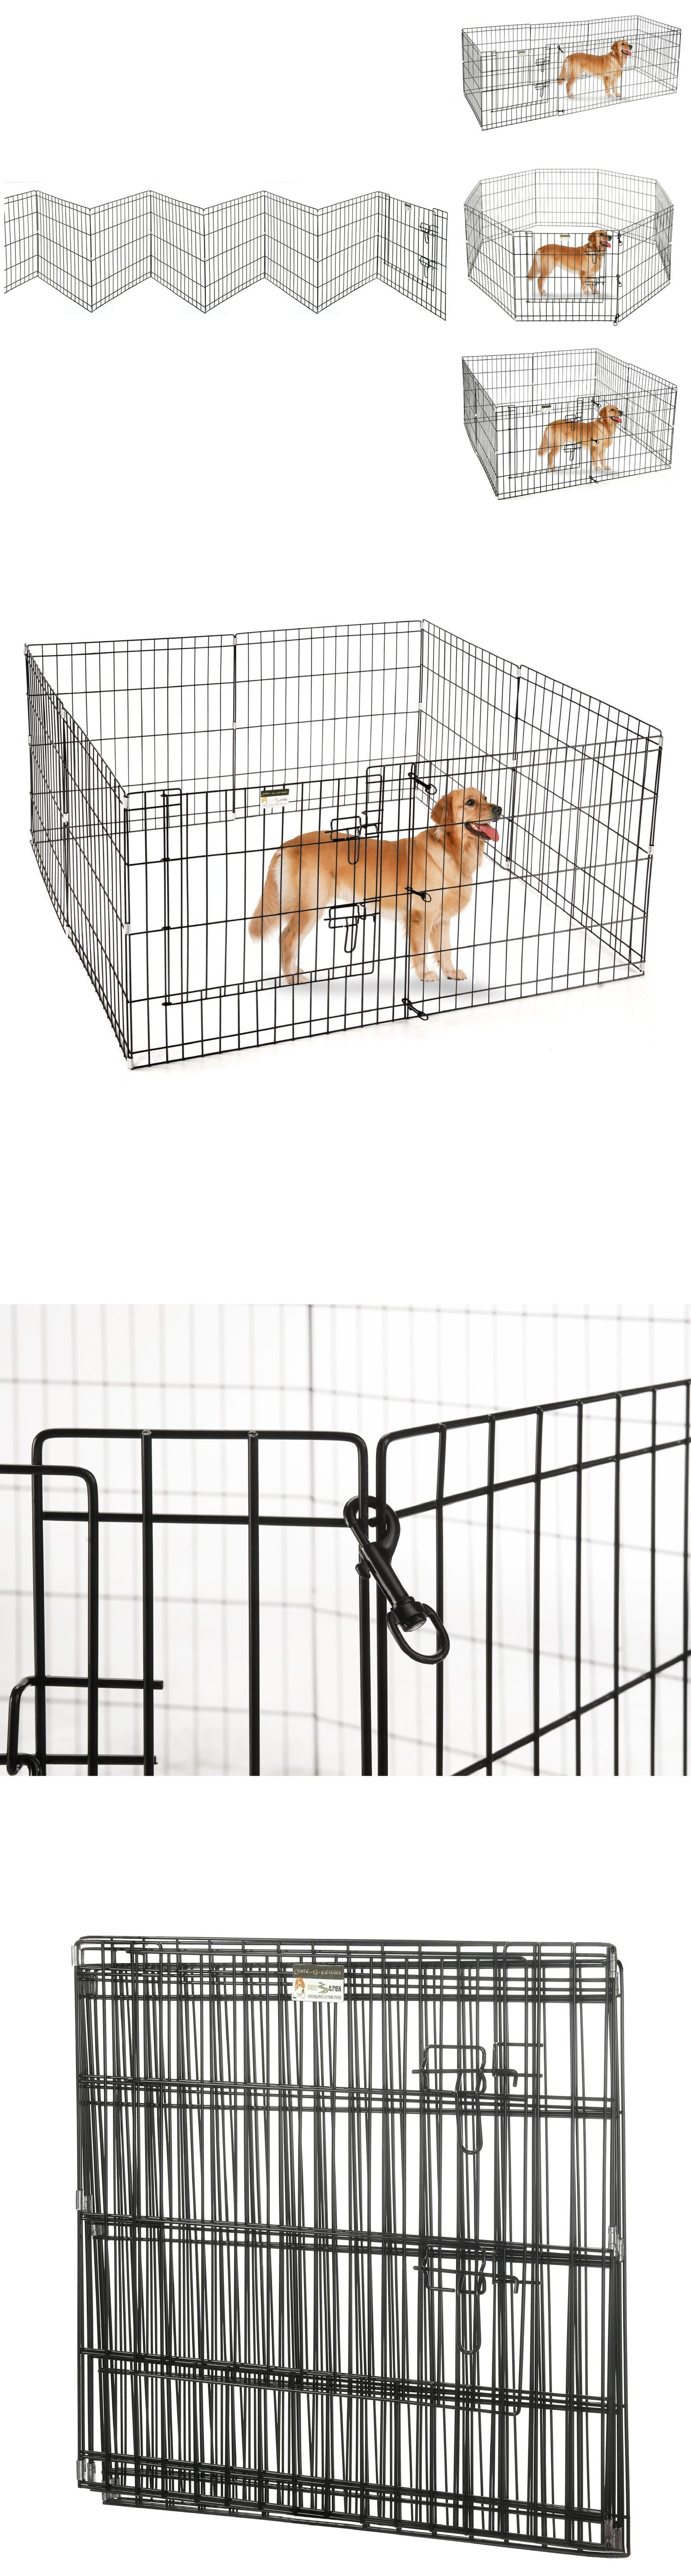 Fences And Exercise Pens 20748: Portable Folding Exercise Pet Playpen Dog  Puppy Fences Gate Home